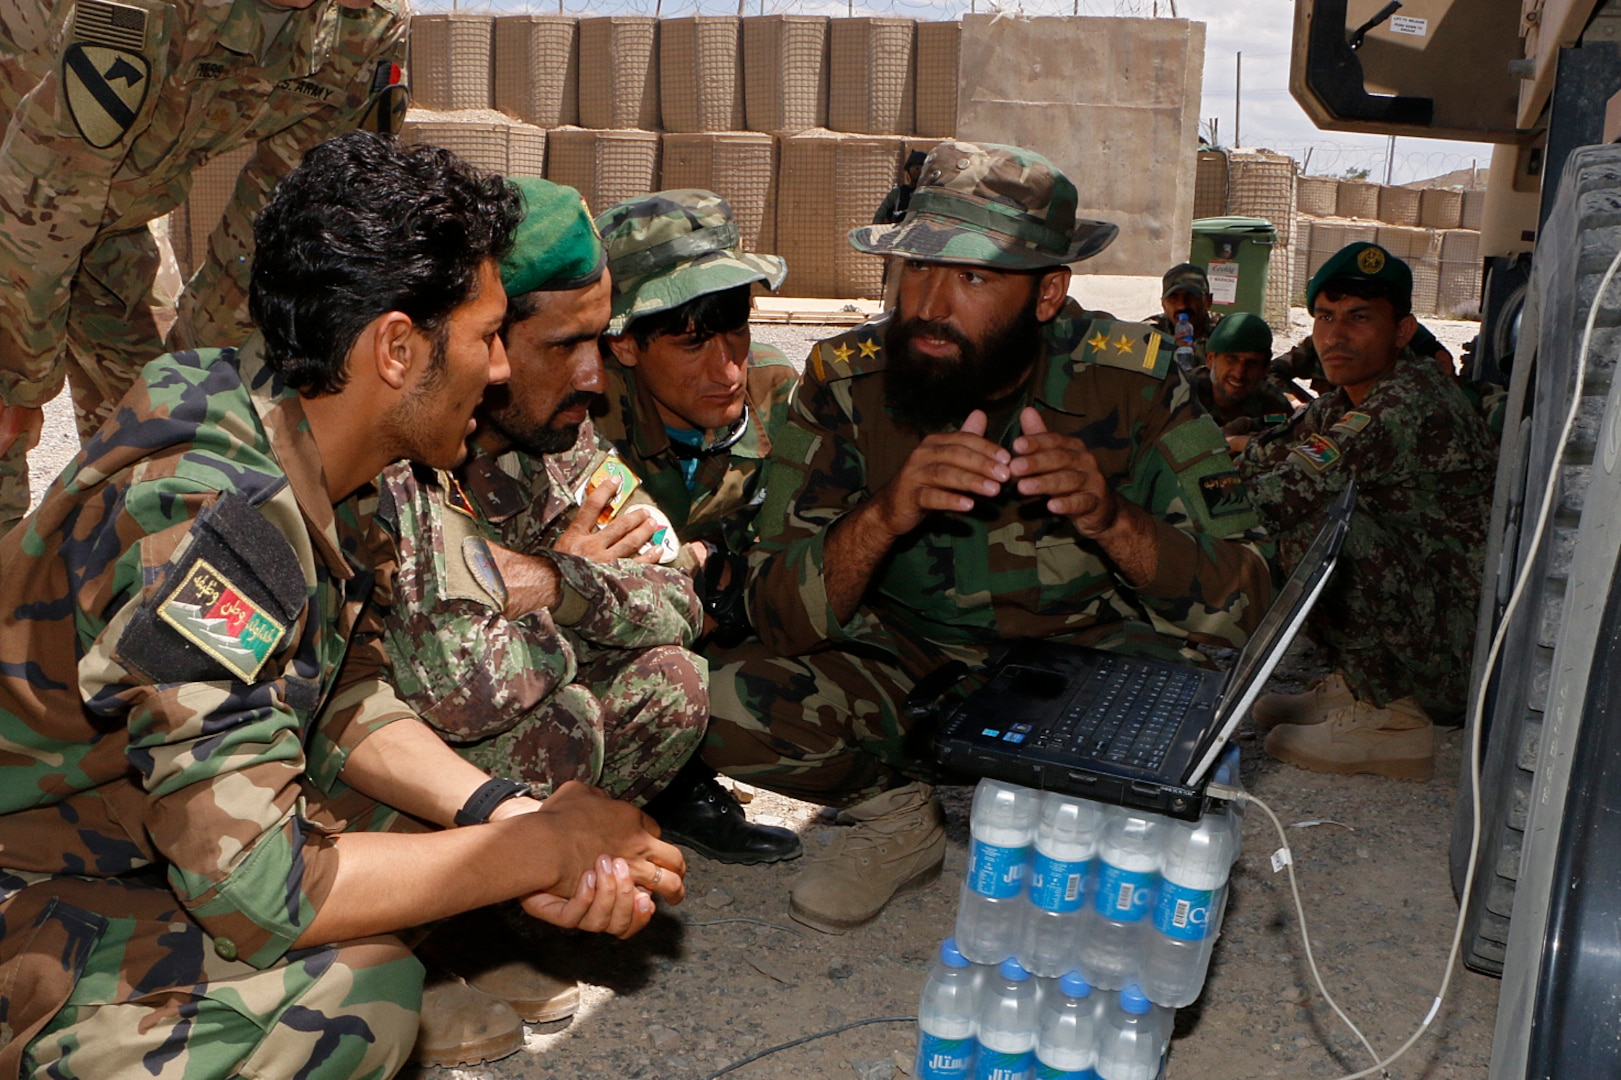 An Afghan National Army officer teaches ANA Soldiers about filling Electronic Warfare equipment under supervision of Staff Sgt. Justin Hood, Electronic Warfare Specialist for the Military Advisor Team of Task Force Southeast, during an Electronic Warfare training July 6 with Afghan National Army Soldiers of the 203rd Thunder Corps on AP Lightning. The purpose of the Train, Advise and Assist mission is to enable and develop the Afghan National Defense Security Forces with systems and processes that will continue to enable them into the future. (U.S. Army photo provided by Sgt. Christopher B. Dennis, 1st Cavalry Division PAO.)